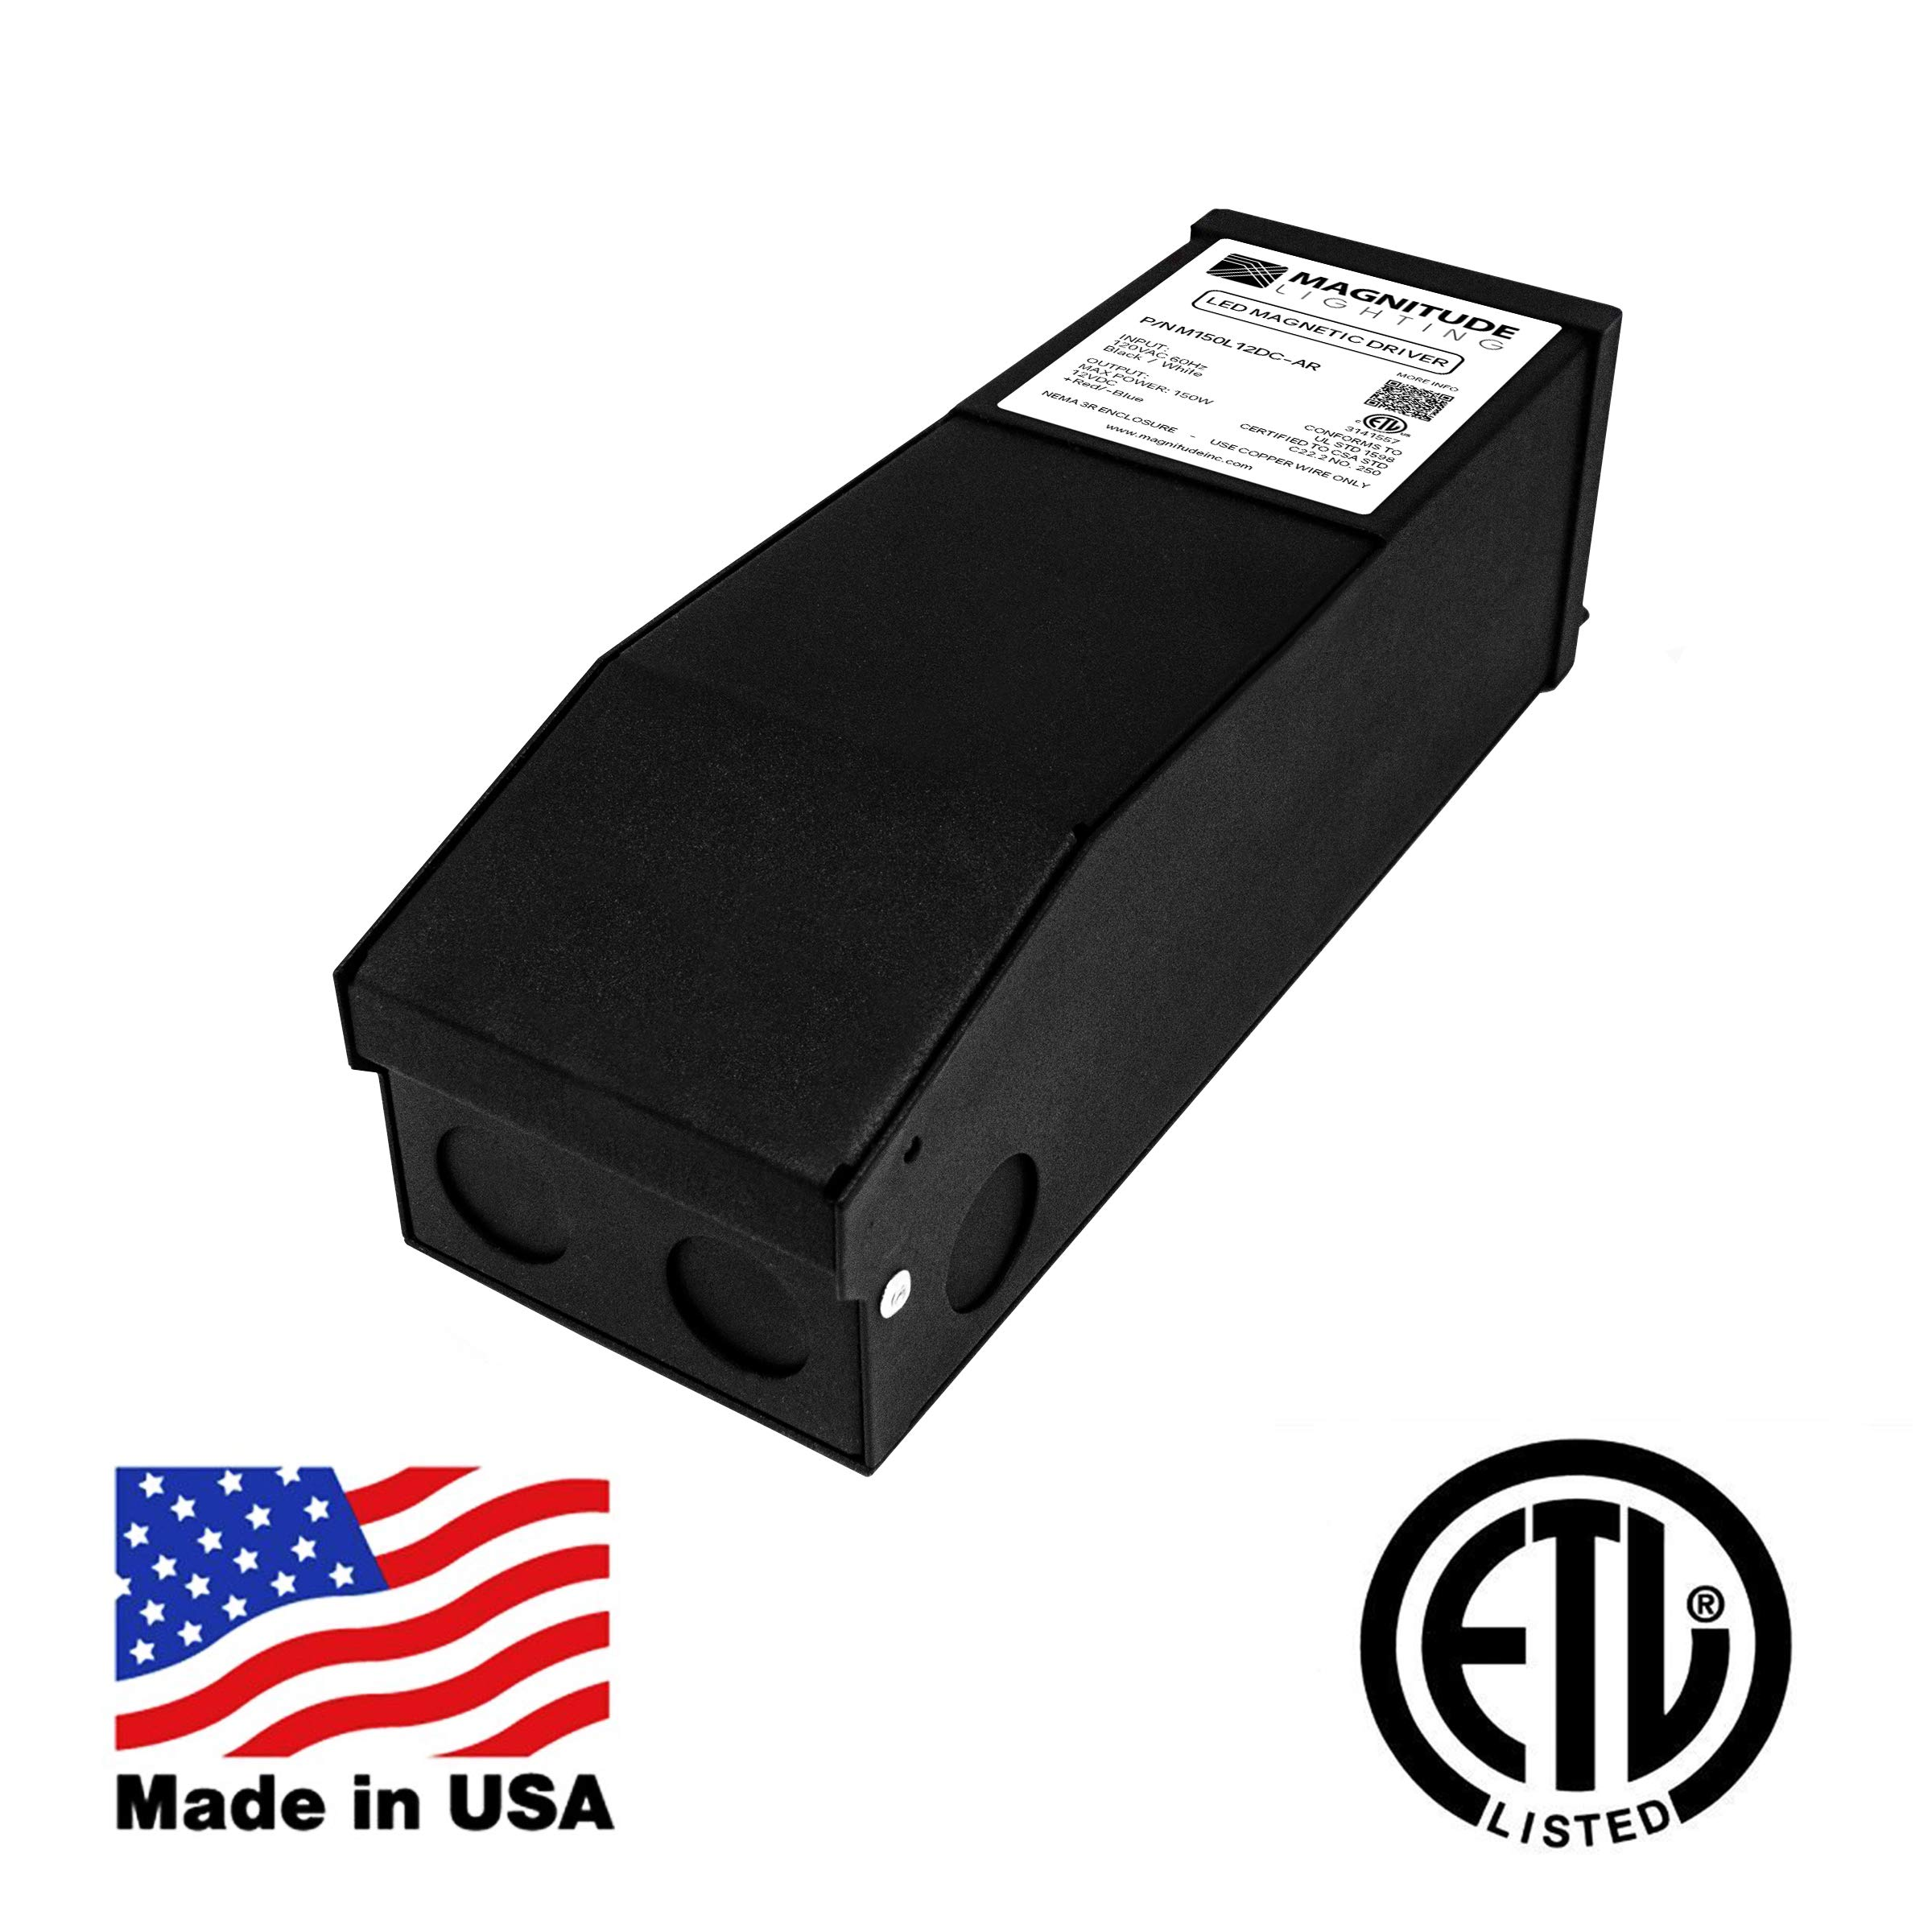 Dimmable Driver 150W (2.5A), Magnetic, 110V AC-24V DC Transformer, Low Voltage Power Supply for LED Strip Lights- Compatible w/Lutron & Leviton - for Kitchens, Cabinets, Bedrooms & More - USA Made …